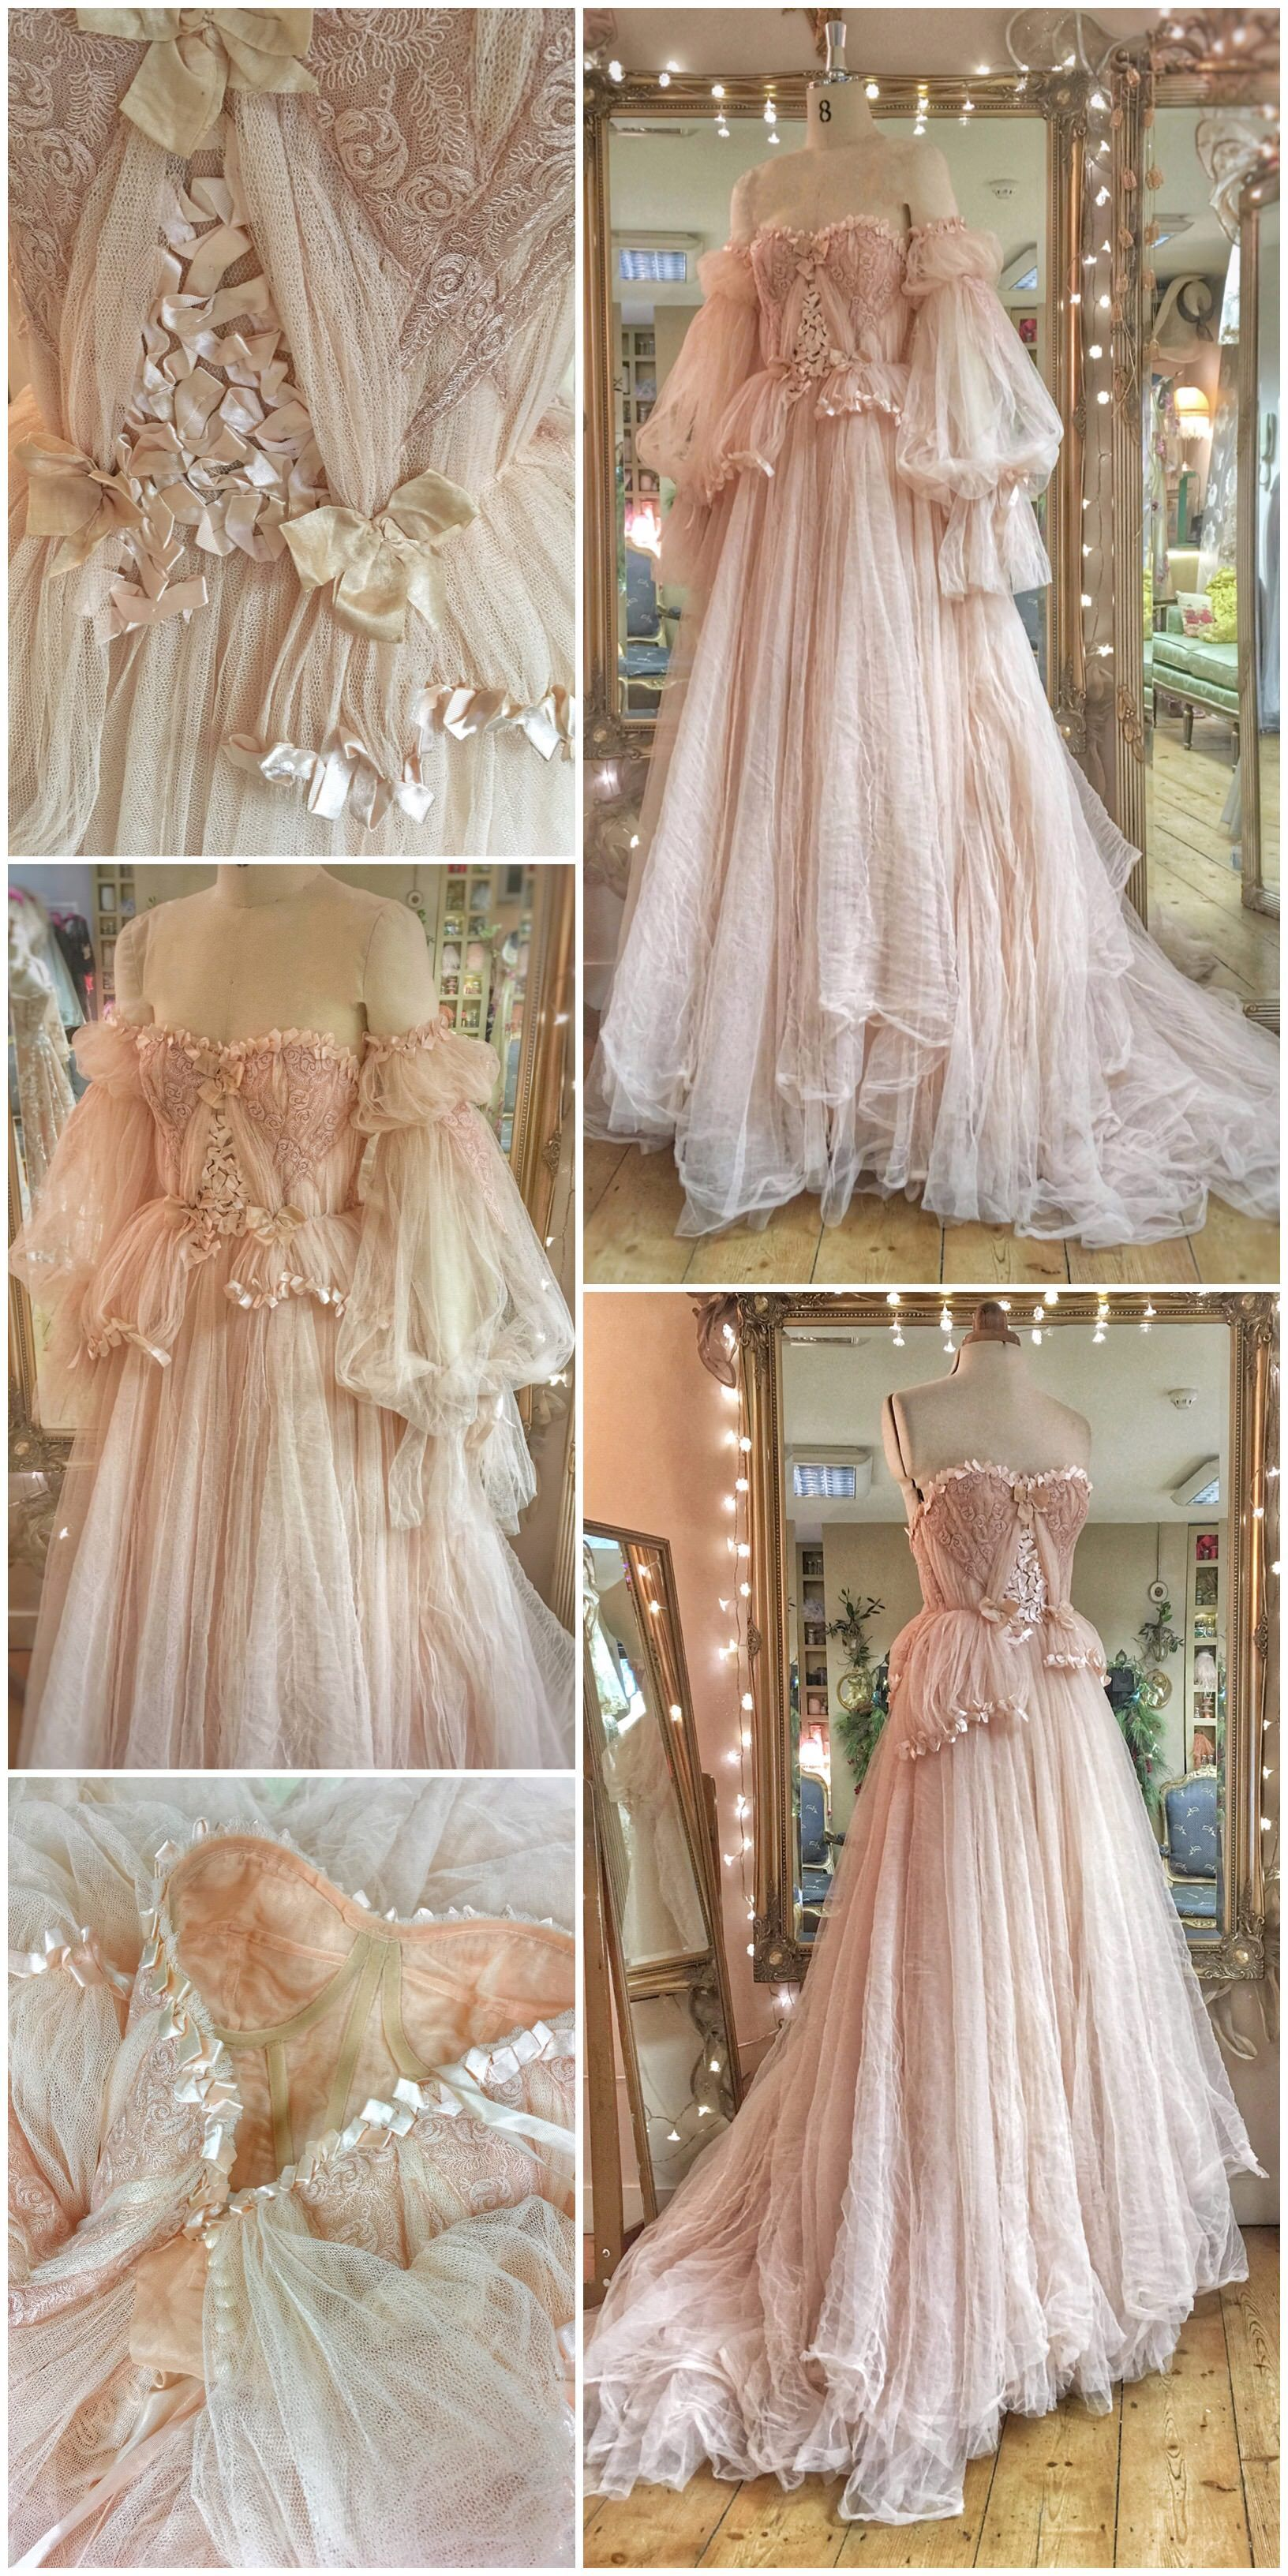 cb2f01fca65 Romantic blush tulle and lace wedding dress with separate sleeves by Joanne  Fleming Design